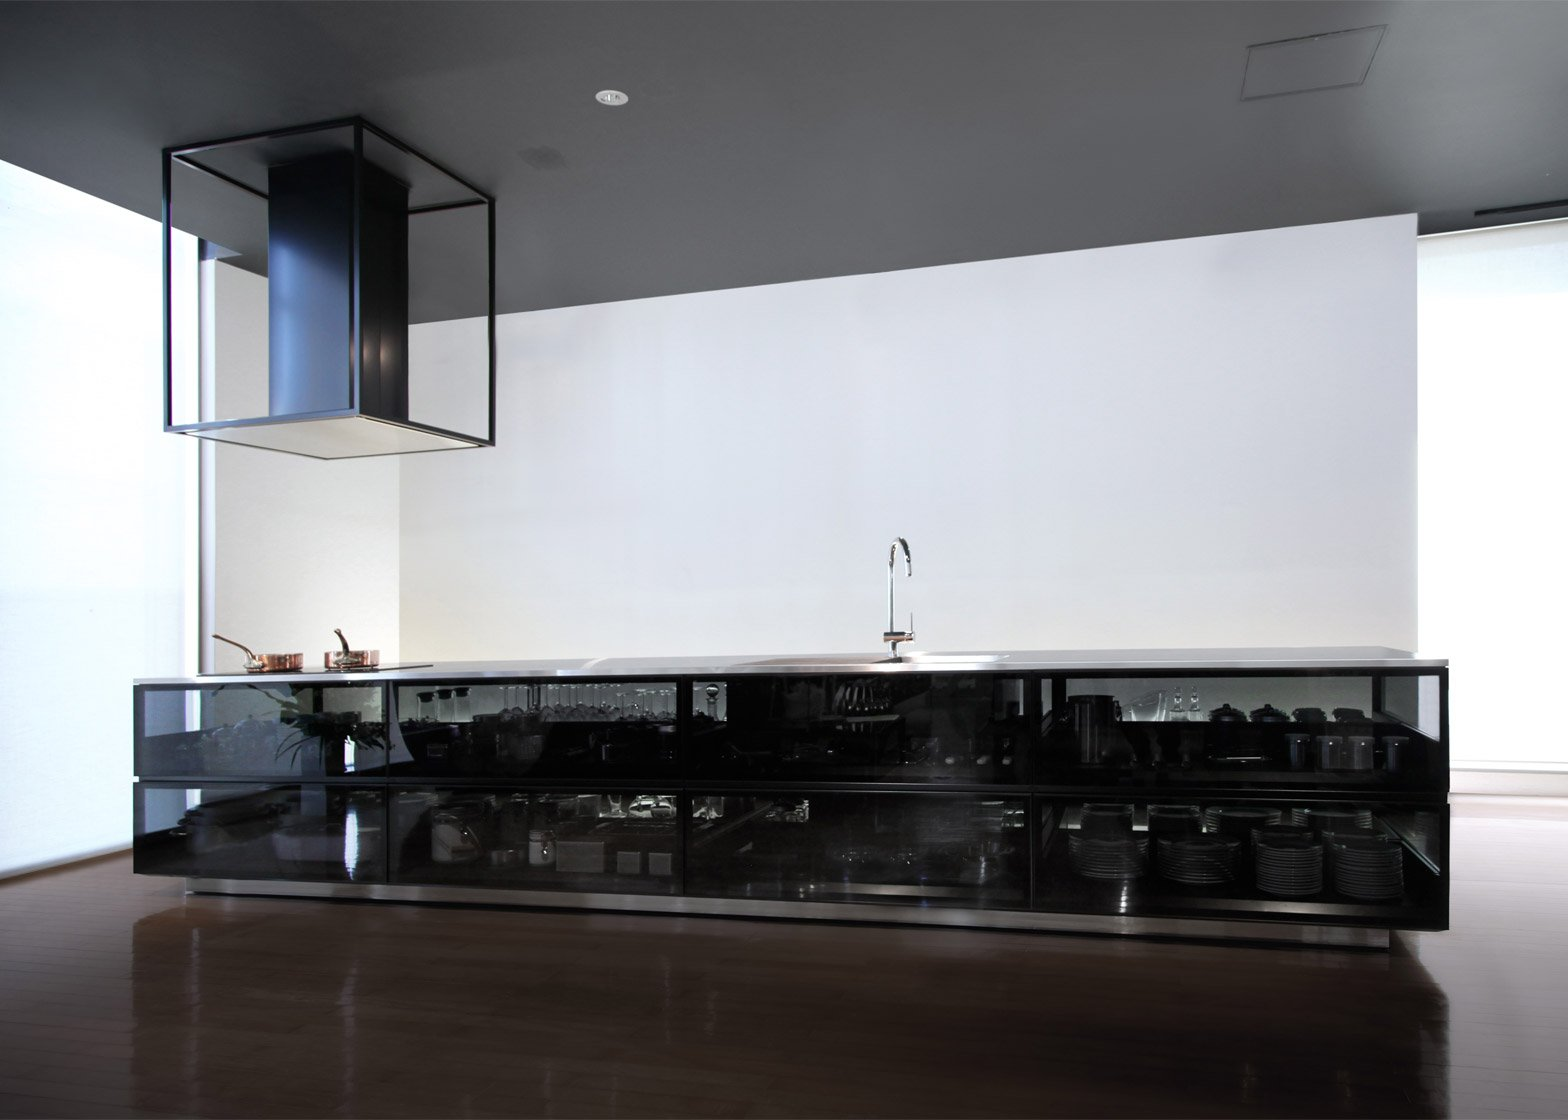 Finesse glass modular kitchen system by Tokujin Yoshioka